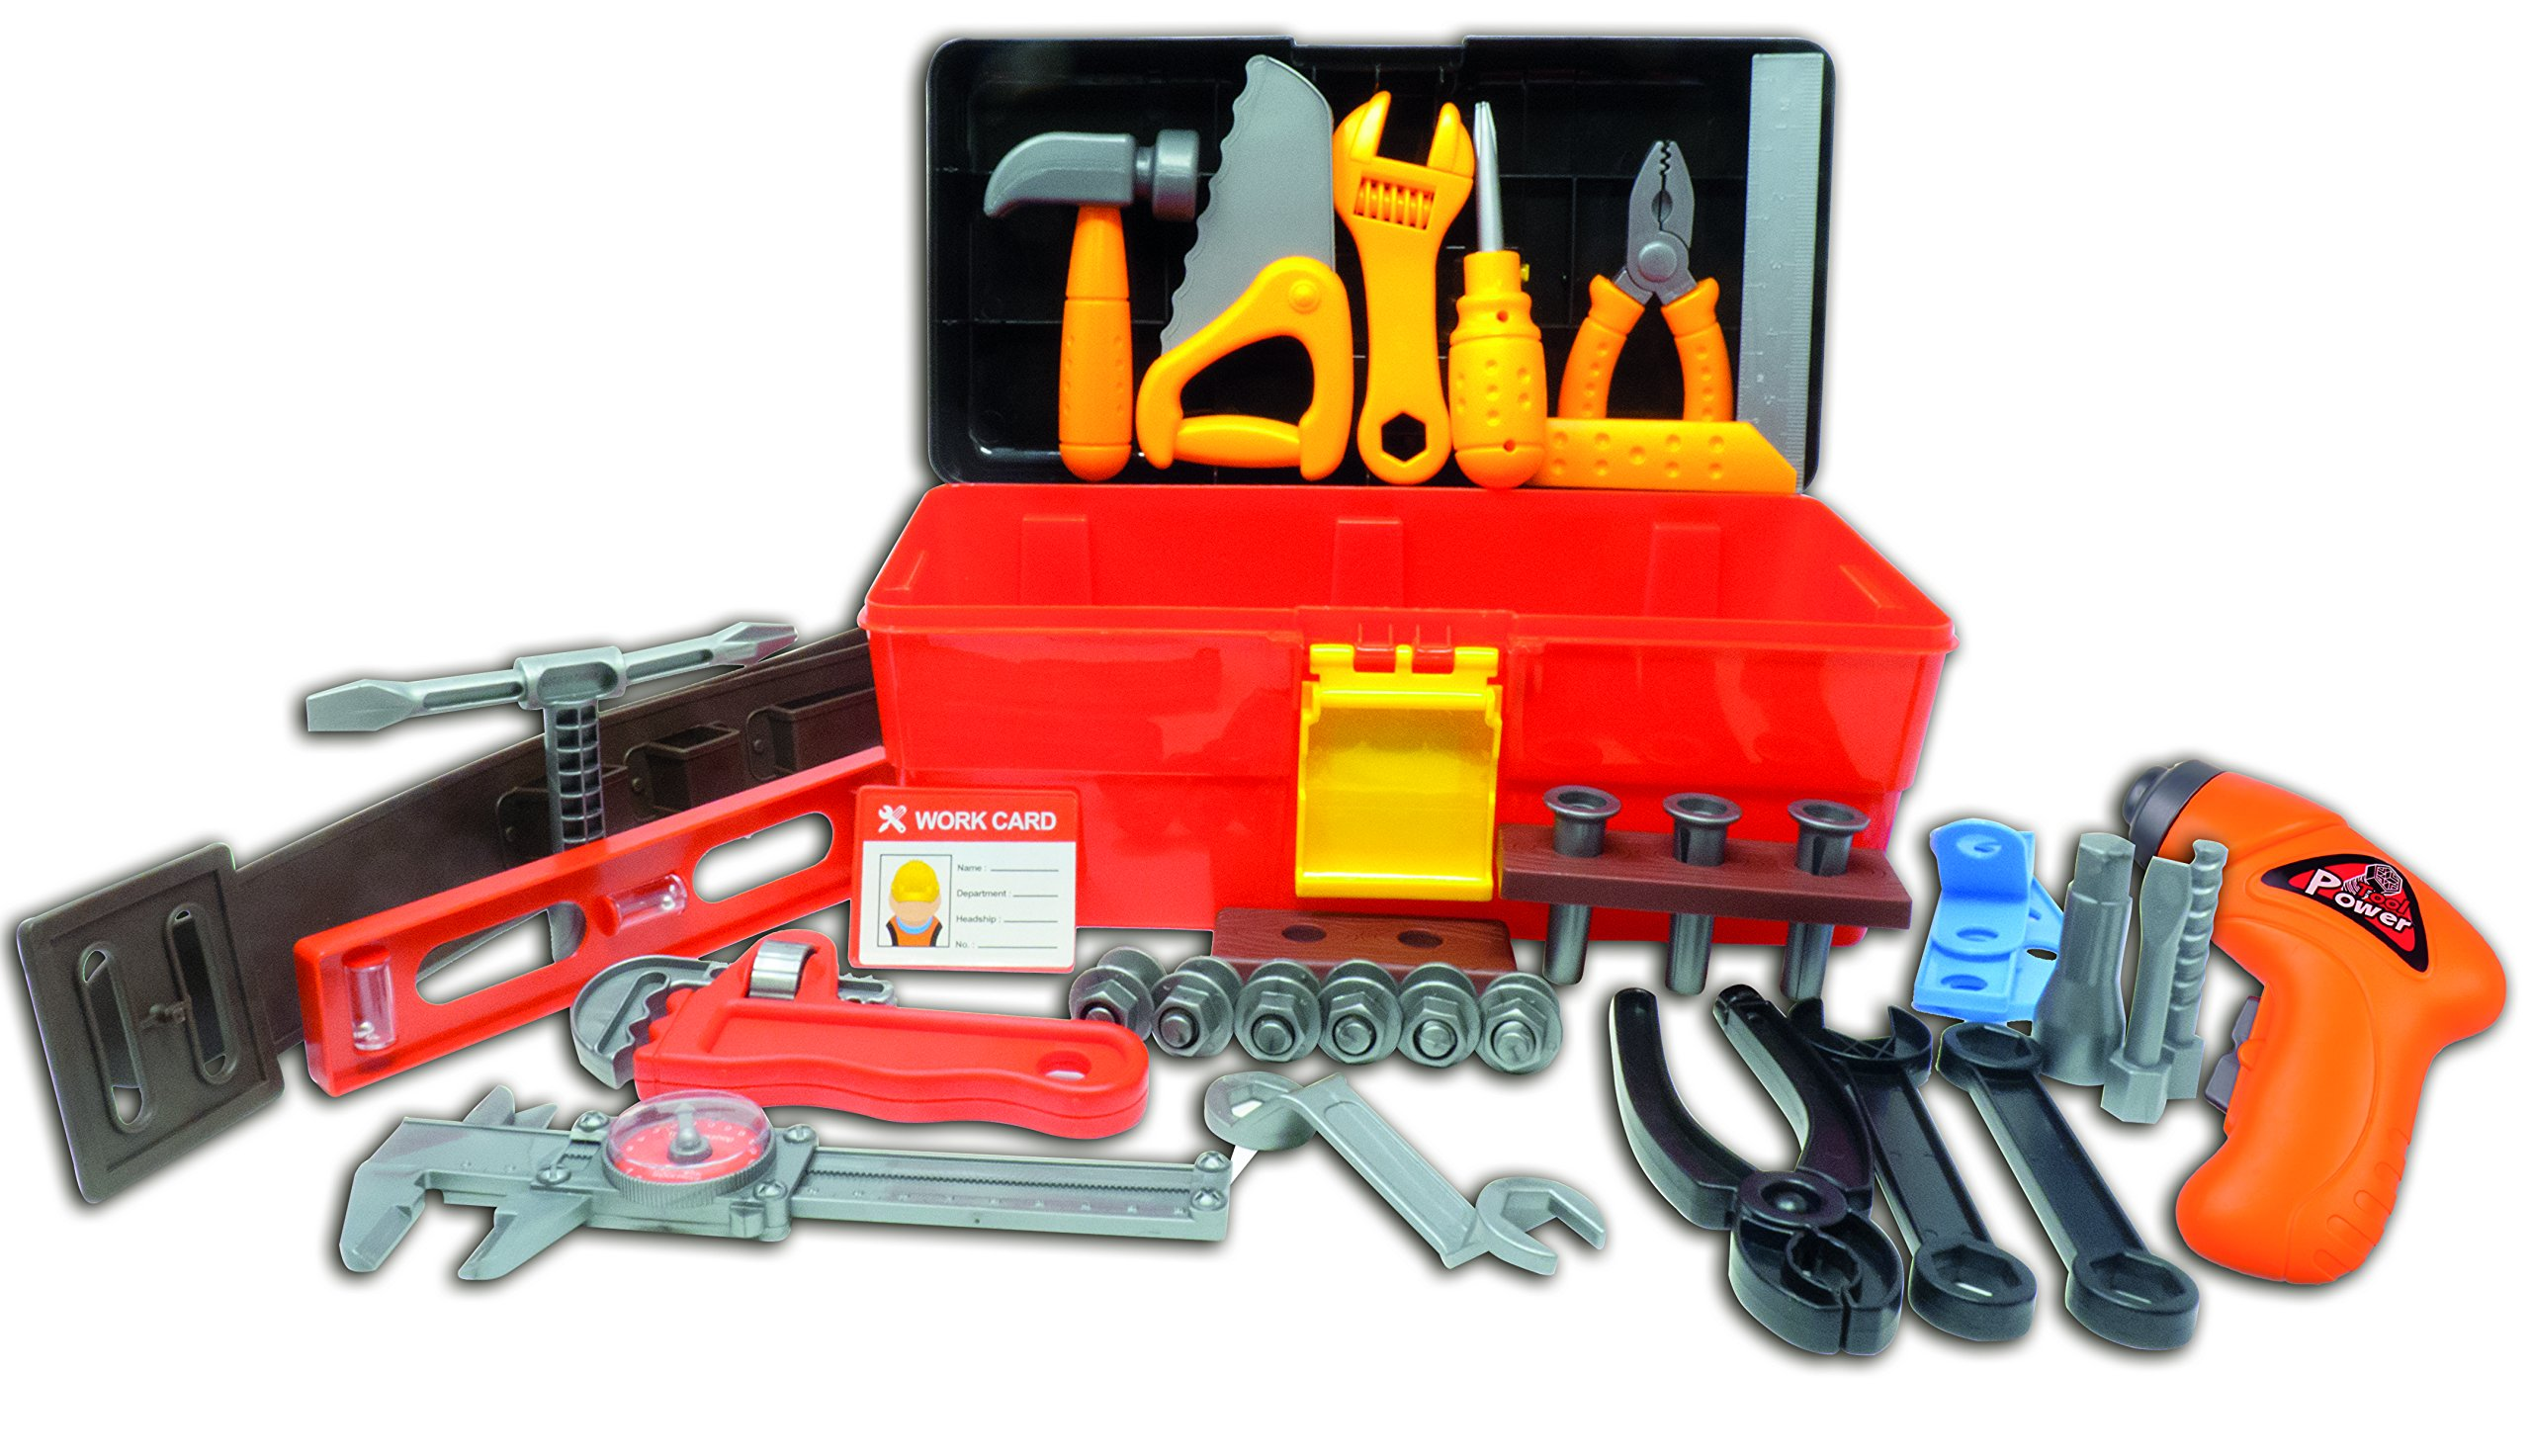 Deluxe Toy Tool Set for Toddlers TG668 - Fun Tool Box Kit for Boys with 40 Pieces Including Battery Powered Drill - Tool Set for Toddlers & Boys by ThinkGizmos (Trademark Protected)